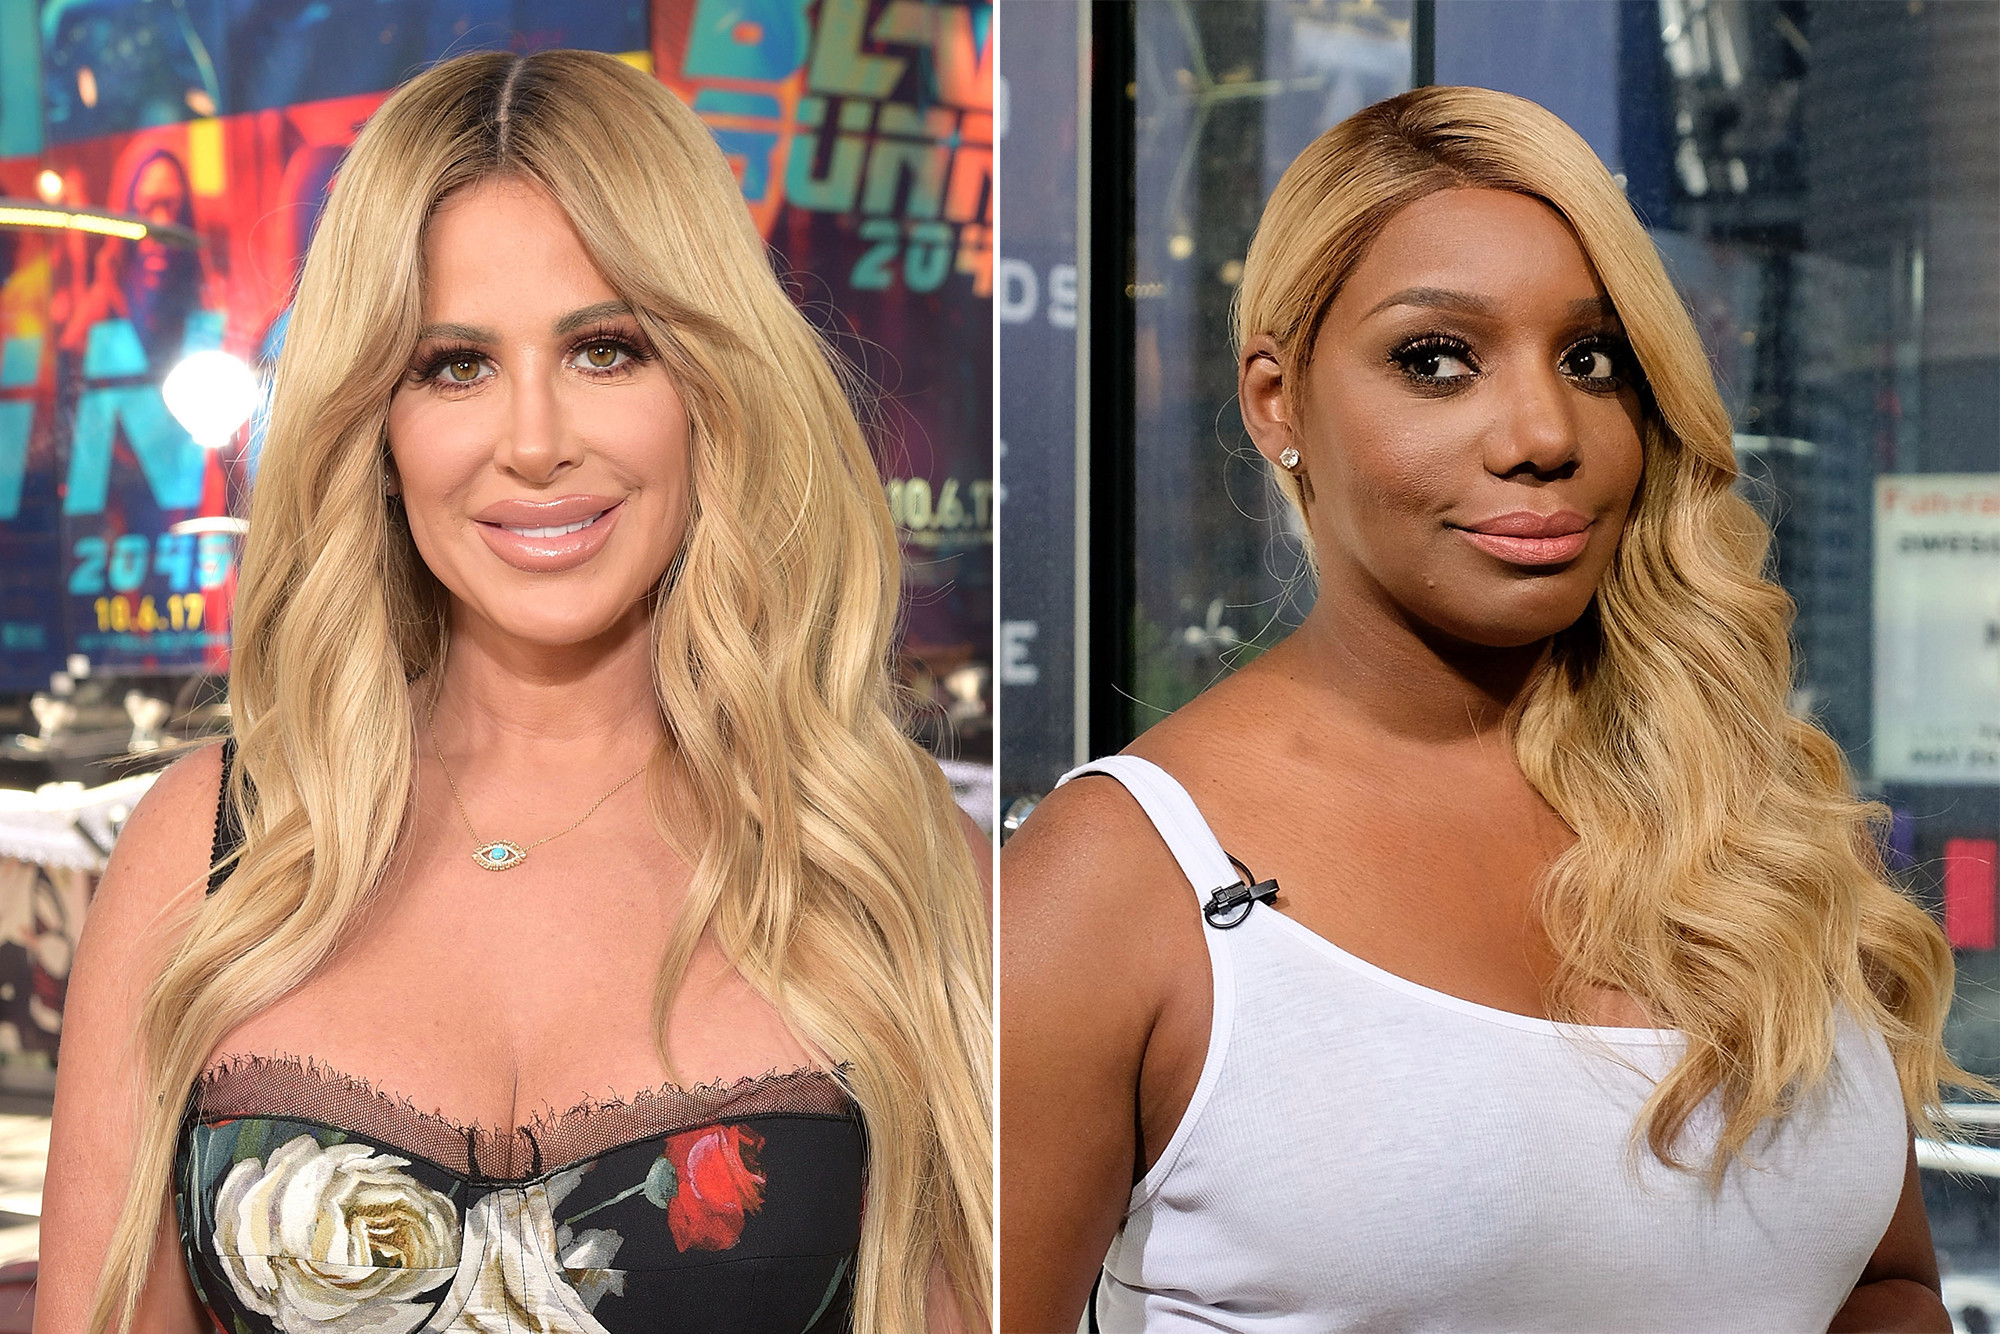 NeNe Leakes' Latest Photo Says Fans That She Doesn't Look Like Herself Anymore - She's Accused Of Trying To Look Like Kim Zolciak